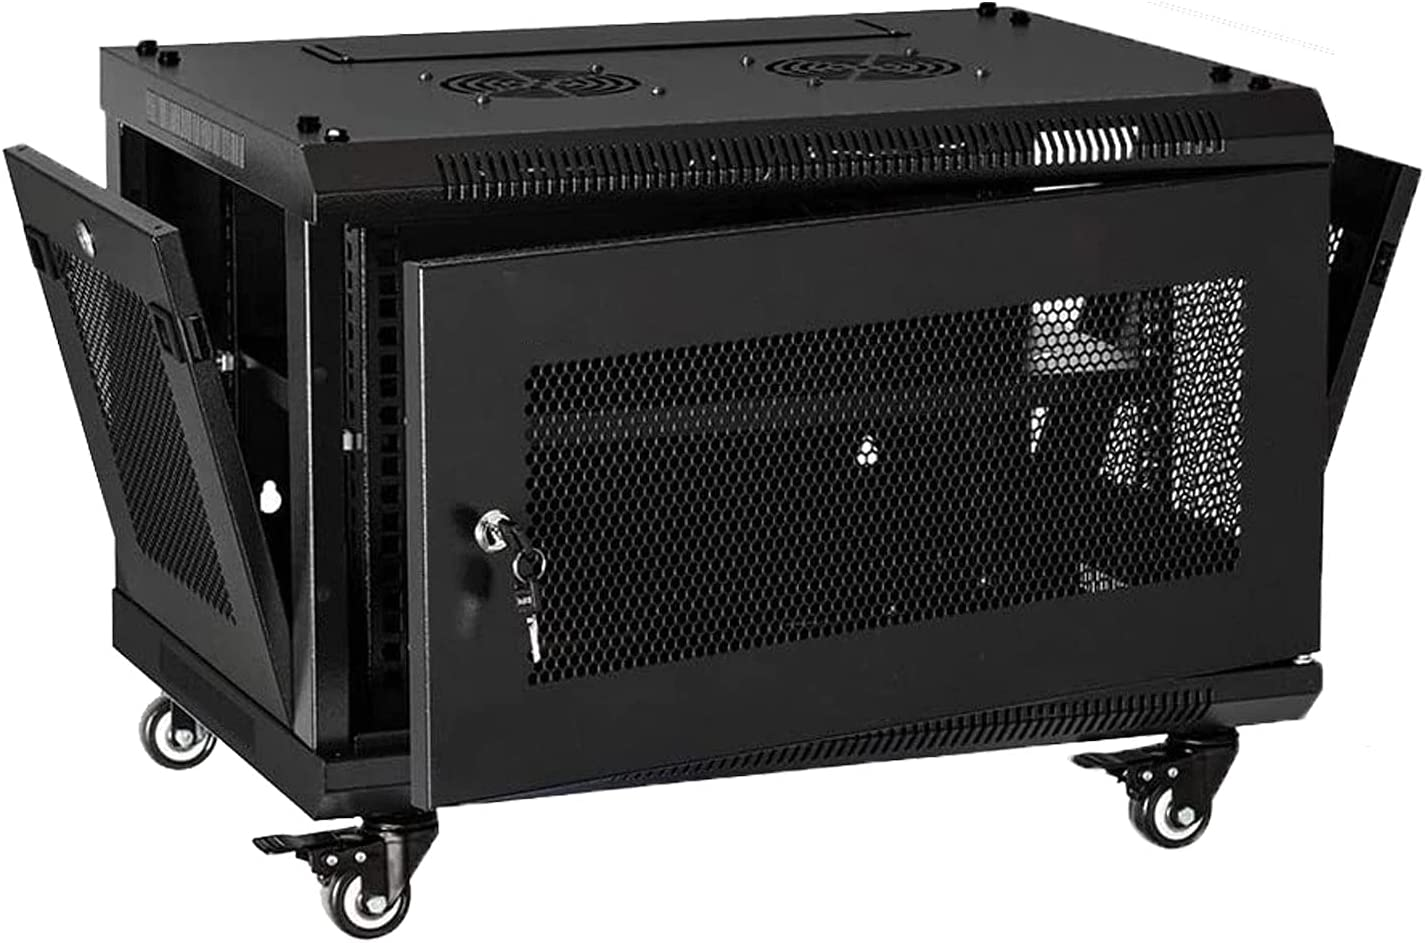 FerruNet6U Casters Network Cabinet Enclosure, Wall Mount Rack w/Wheels, Deluxe 19 inch IT Series Server Data Devices Storage,ApplytoSmall Office, Home Office.